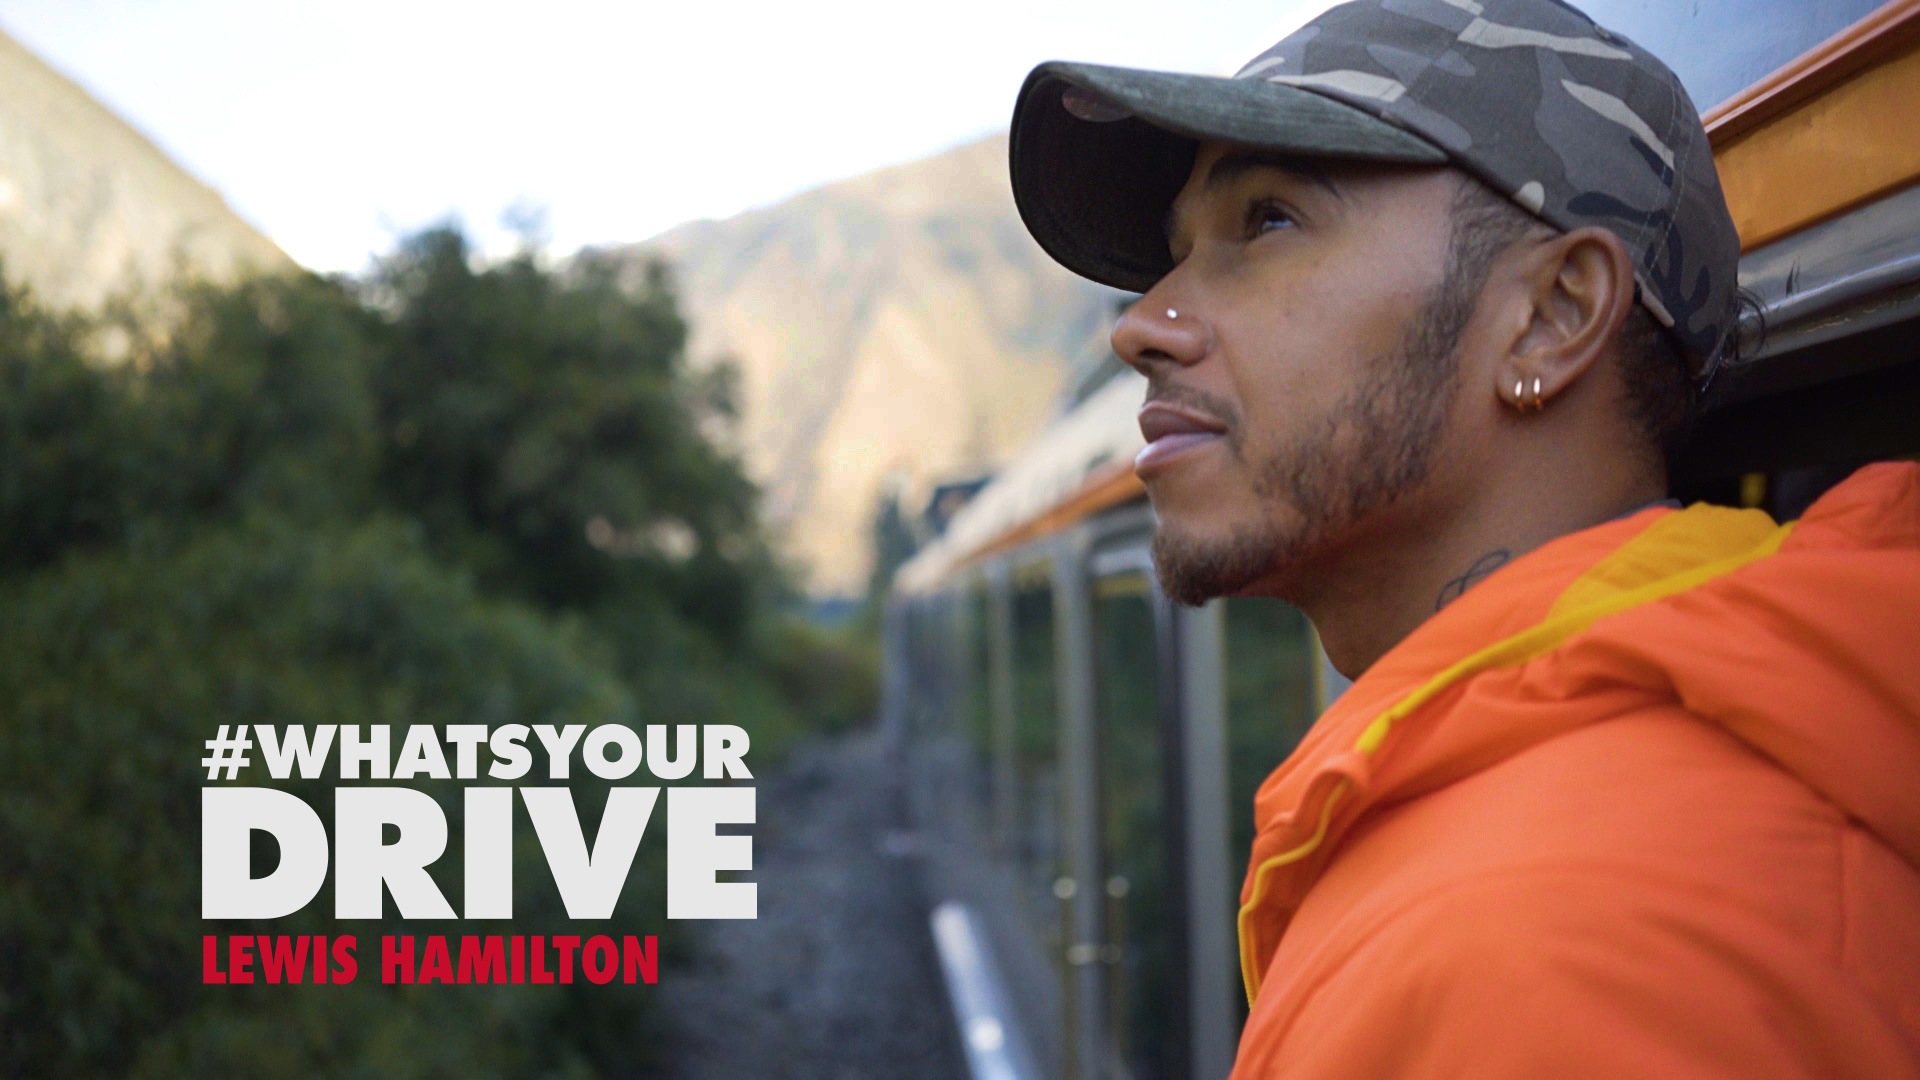 Tommy Hilfiger Announces #WhatsYourDrive Documentary Featuring Global Brand Ambassador Lewis Hamilton